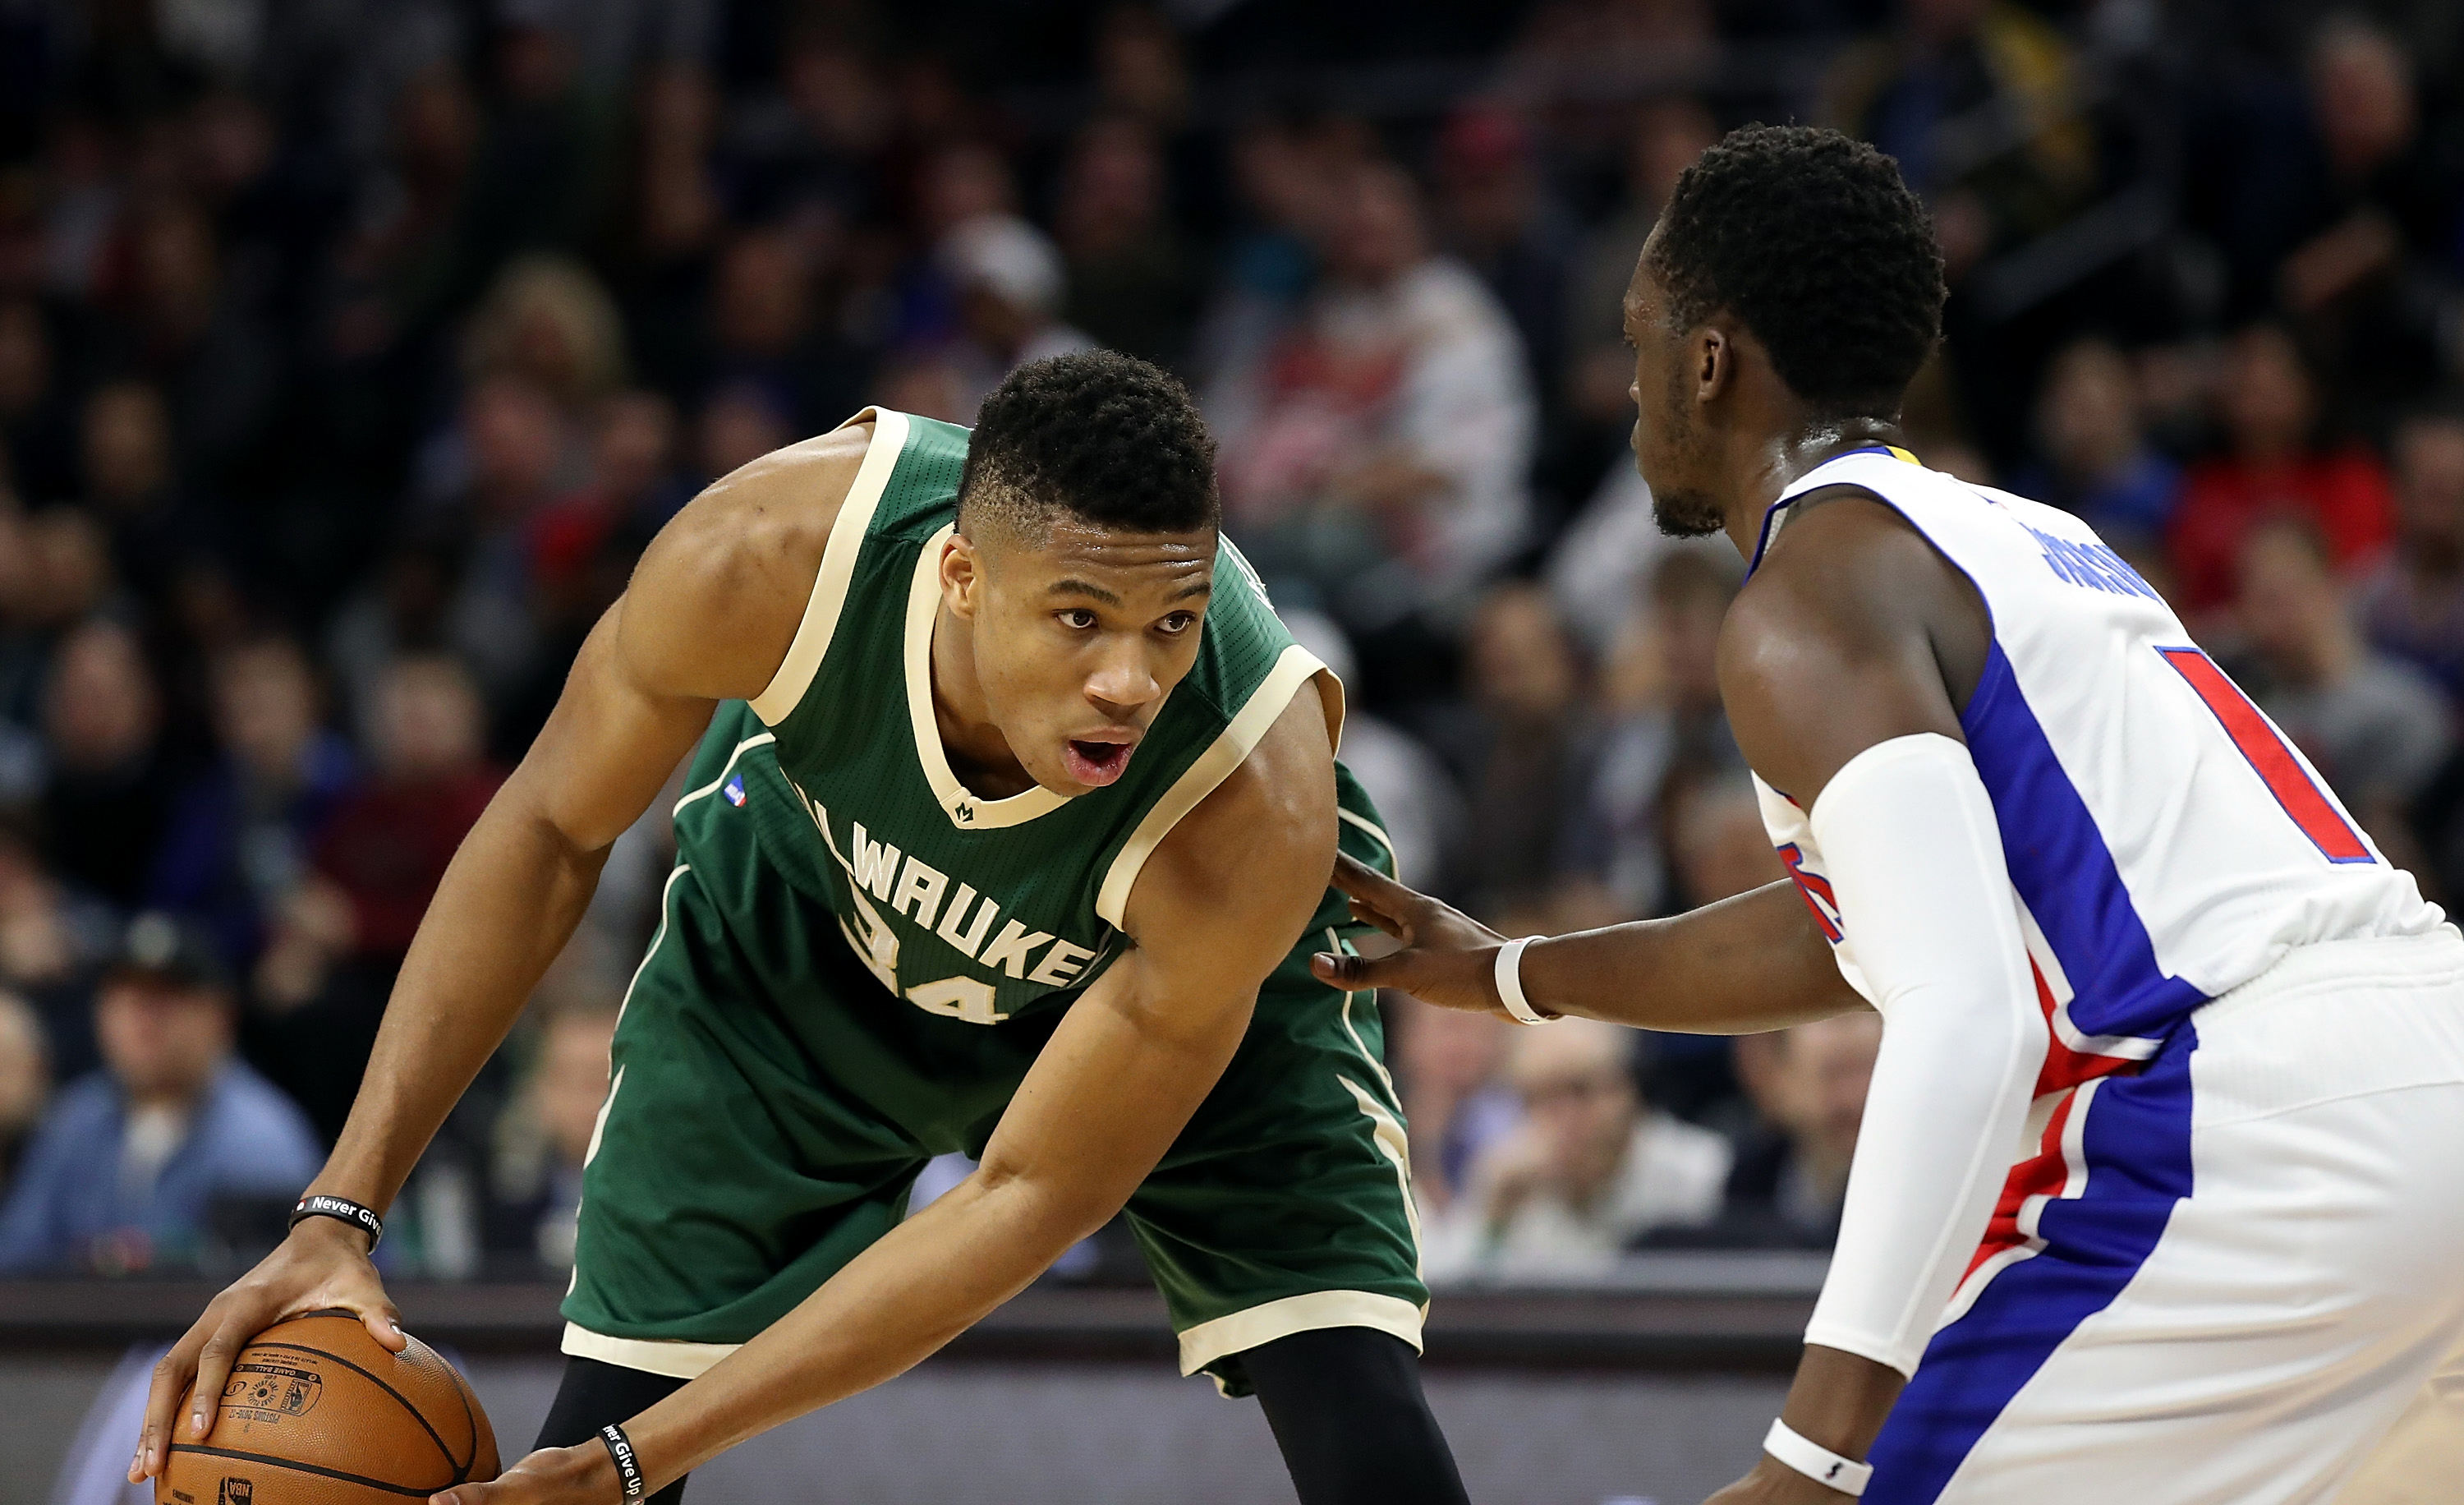 How to watch tonight's Detroit Pistons vs. Milwaukee Bucks game